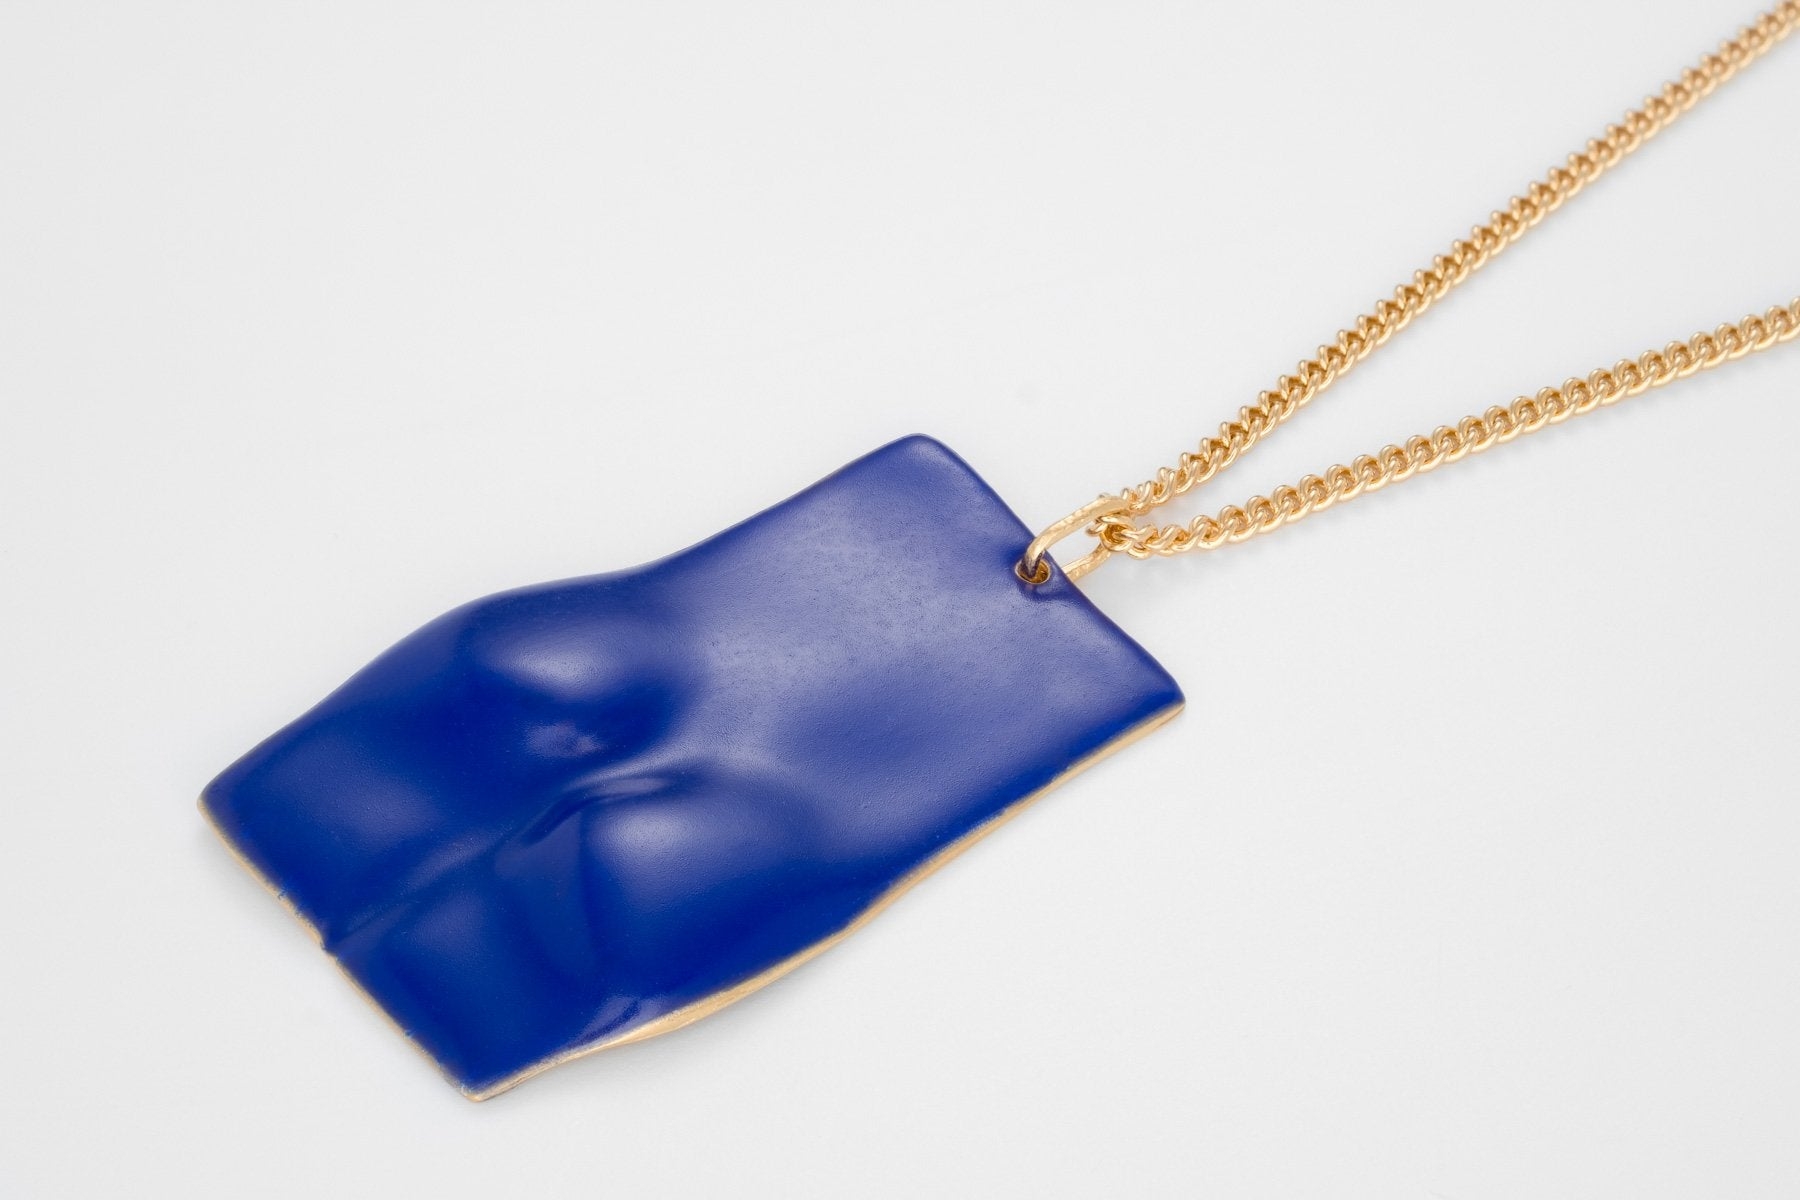 La Vide Blue Necklace